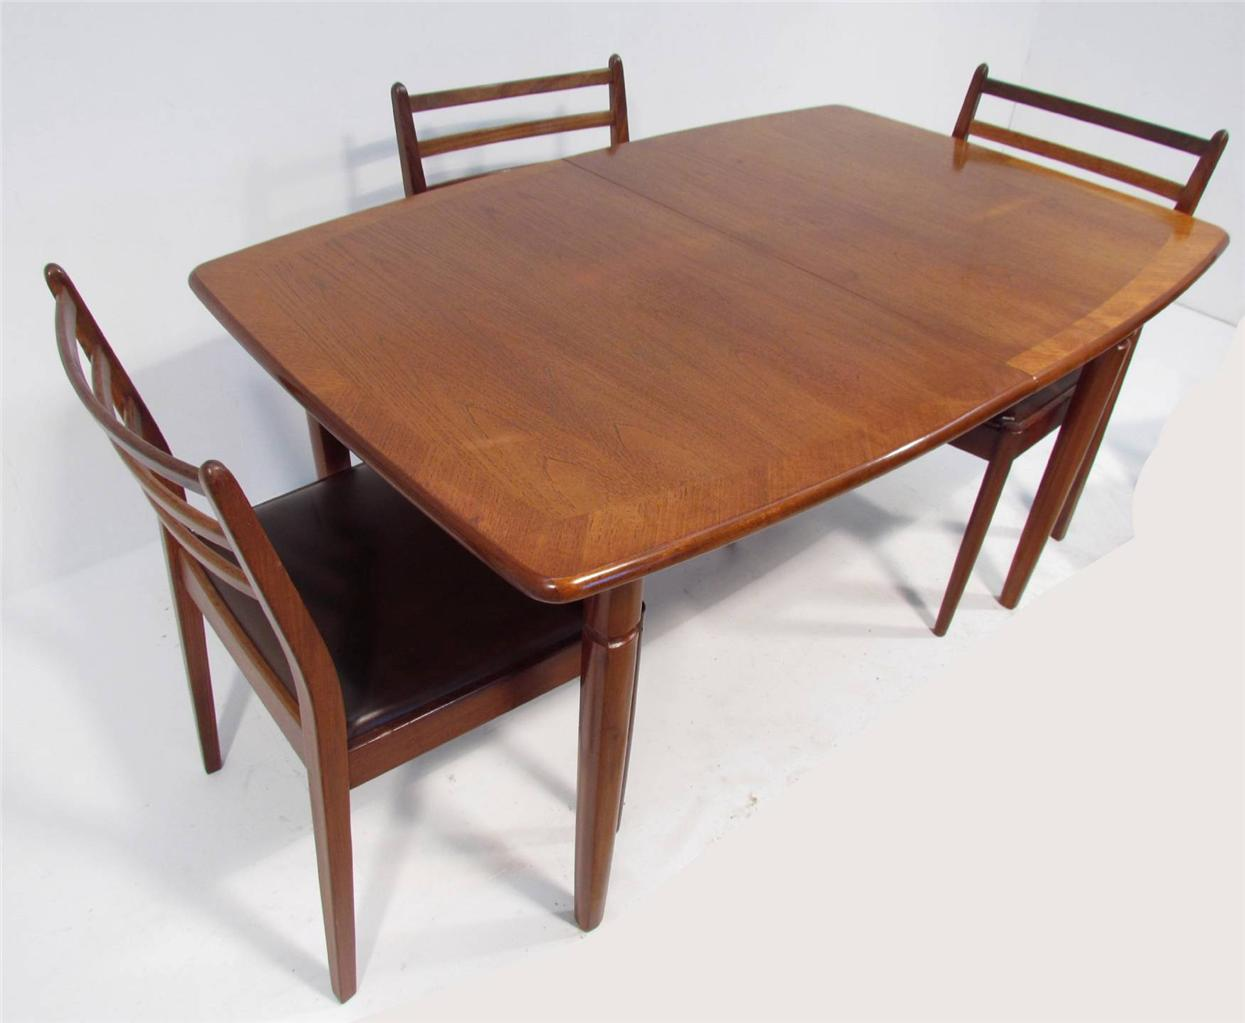 Dining Table And 6 Chairs A Good Retro Teak Dining Table And Six Chairs By G Plan Ebay